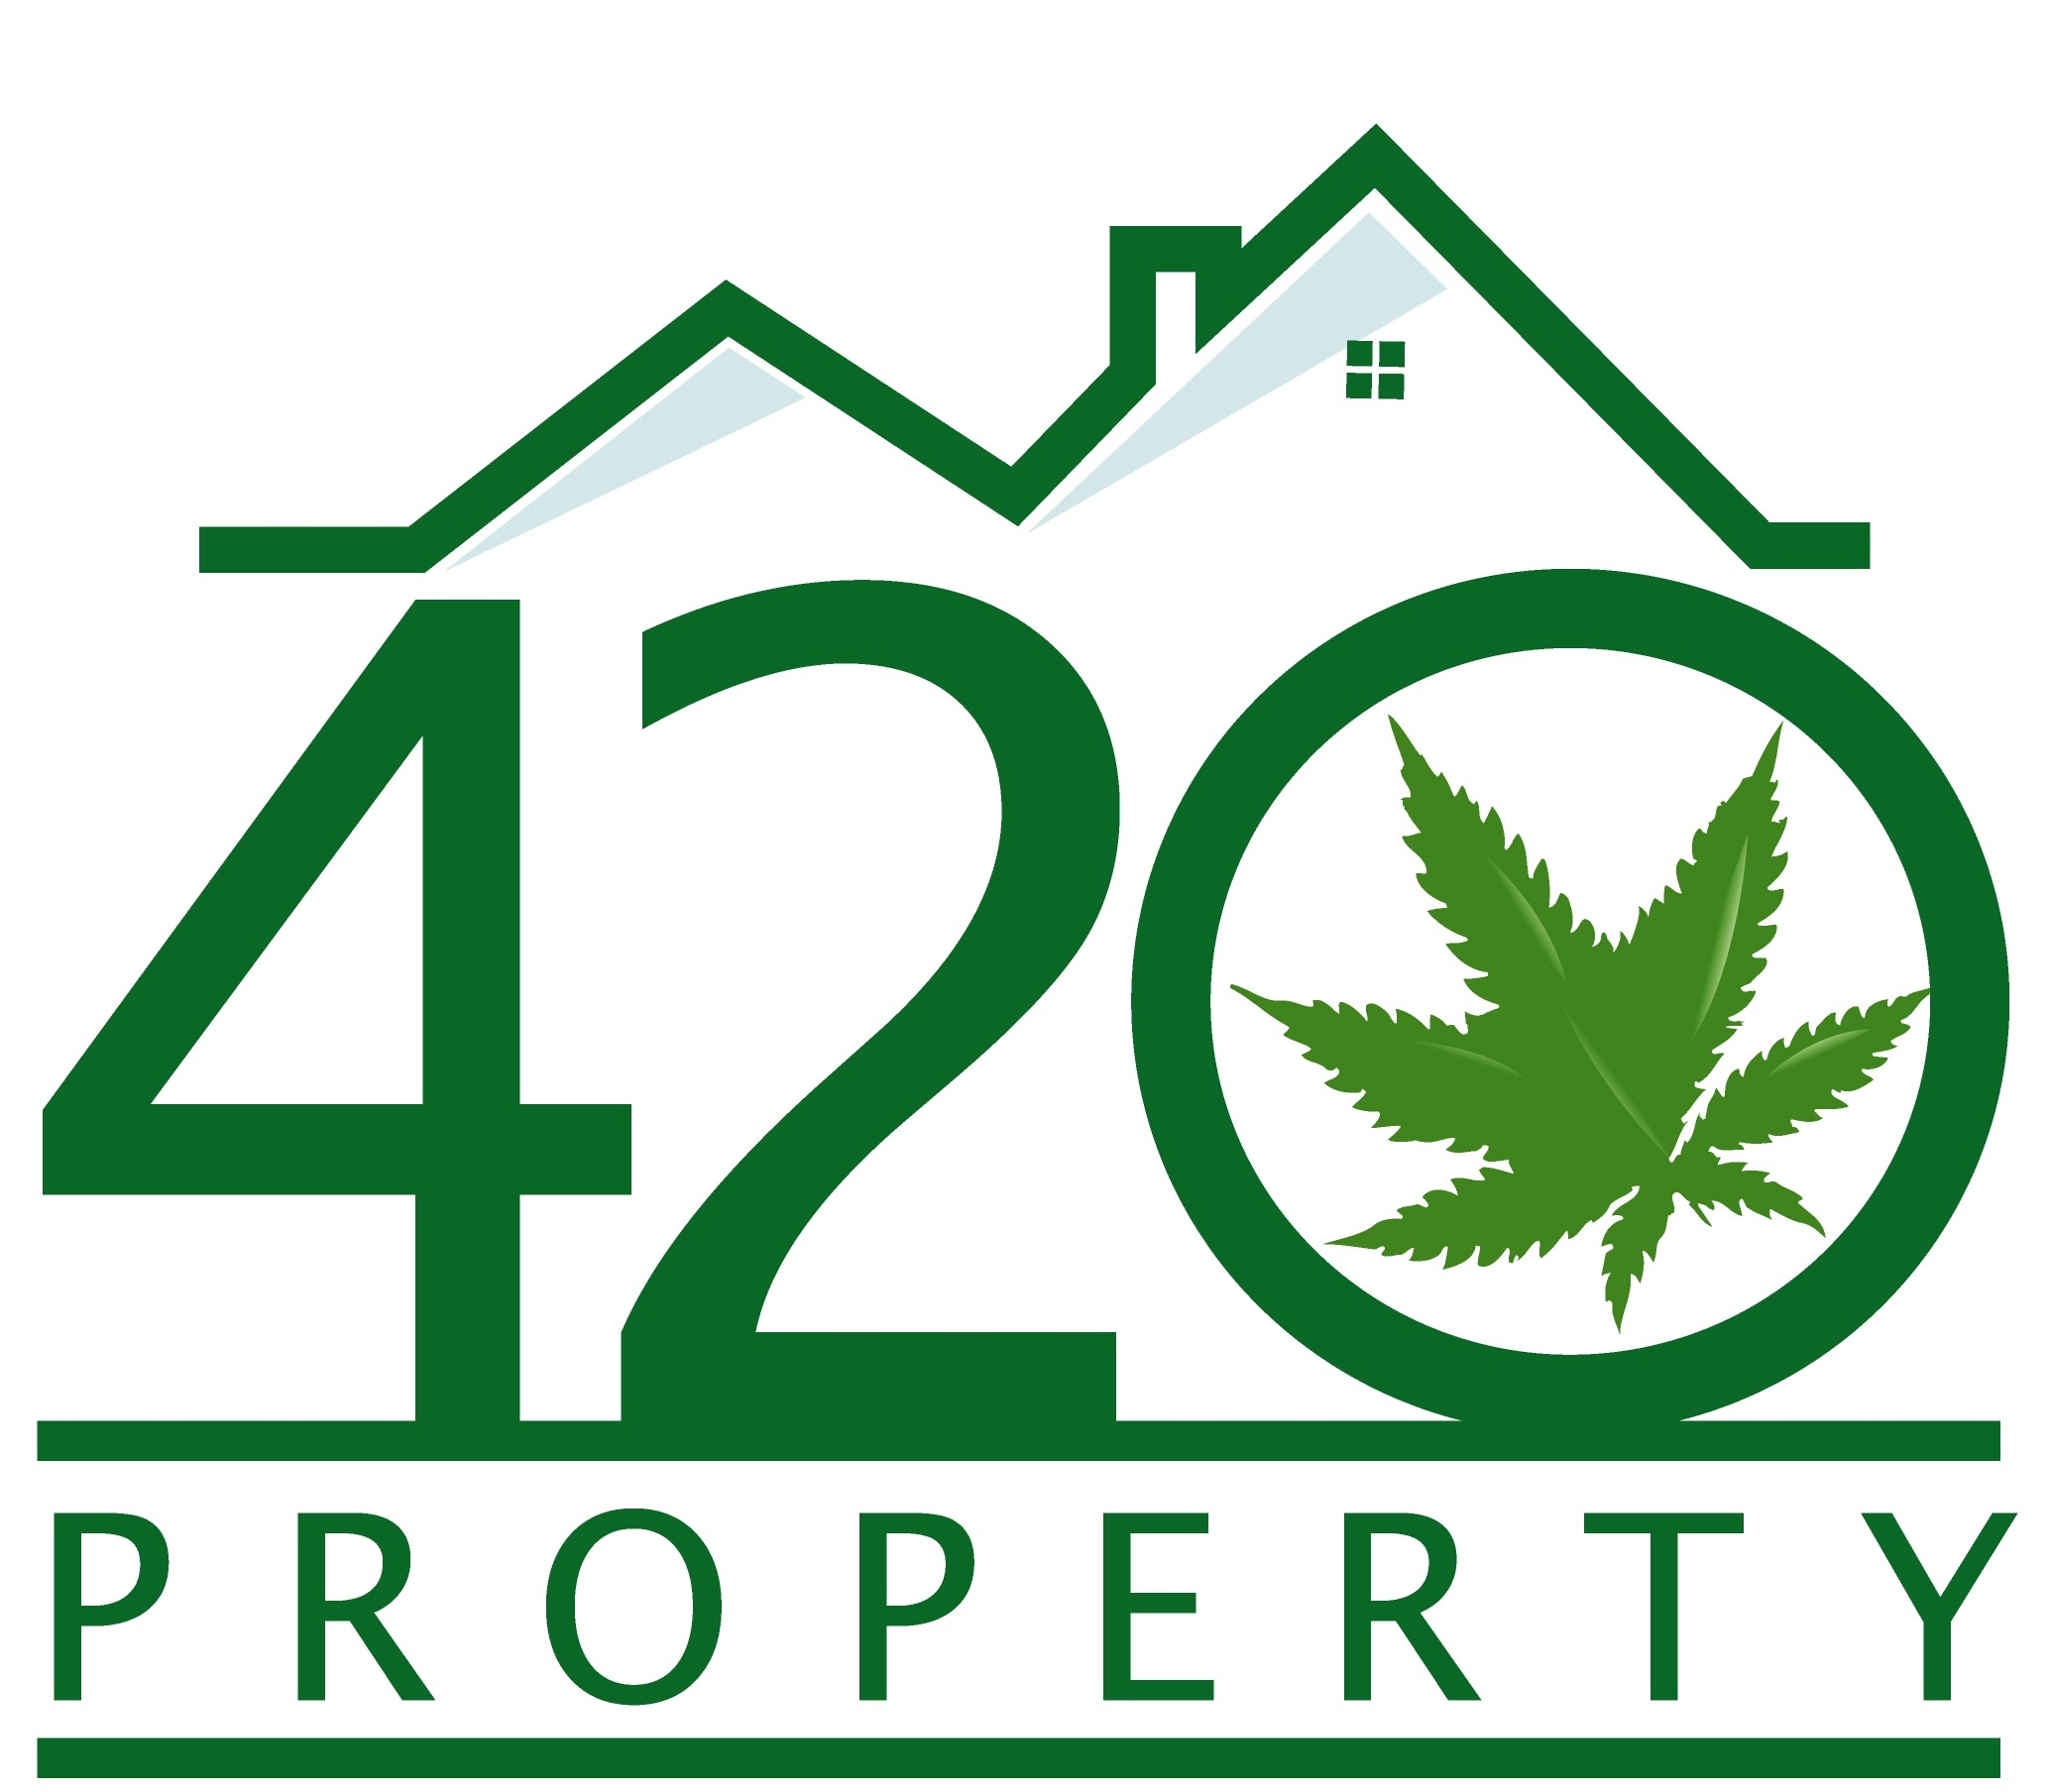 420 Property, LLC